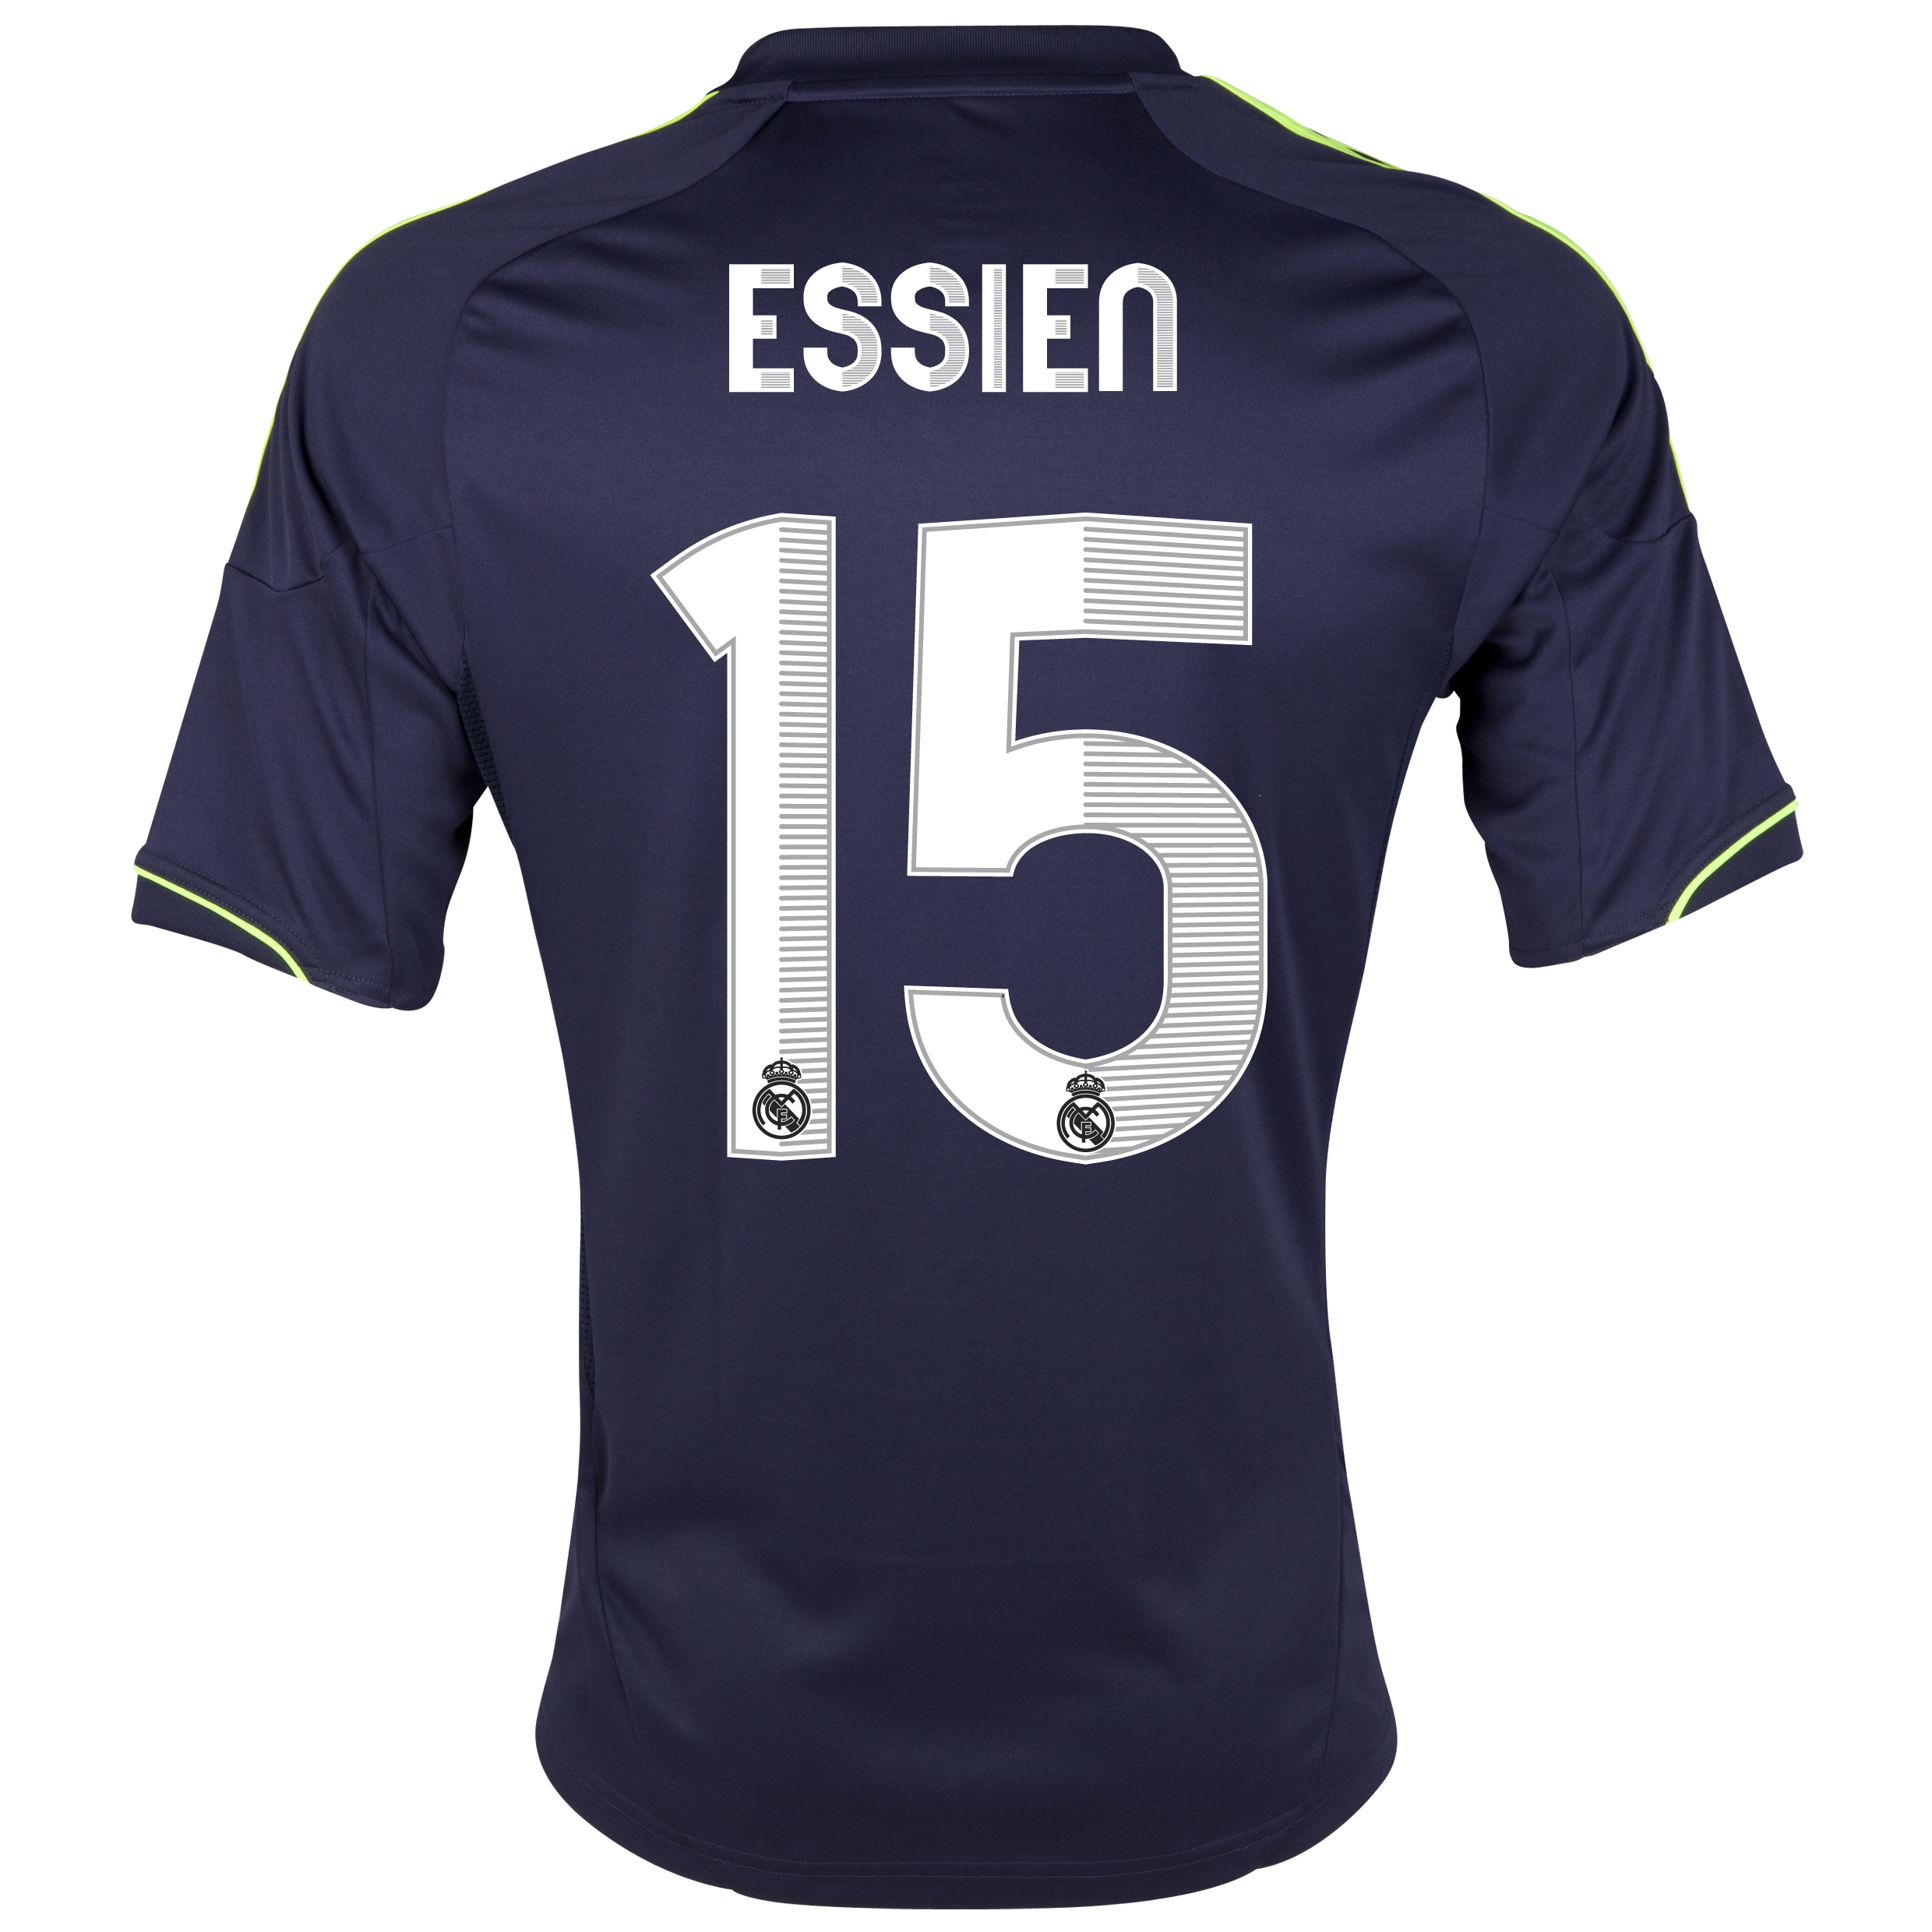 Camiseta 2 Equipacin del Real Madrid 2012/13 - Cadete con Essien N15